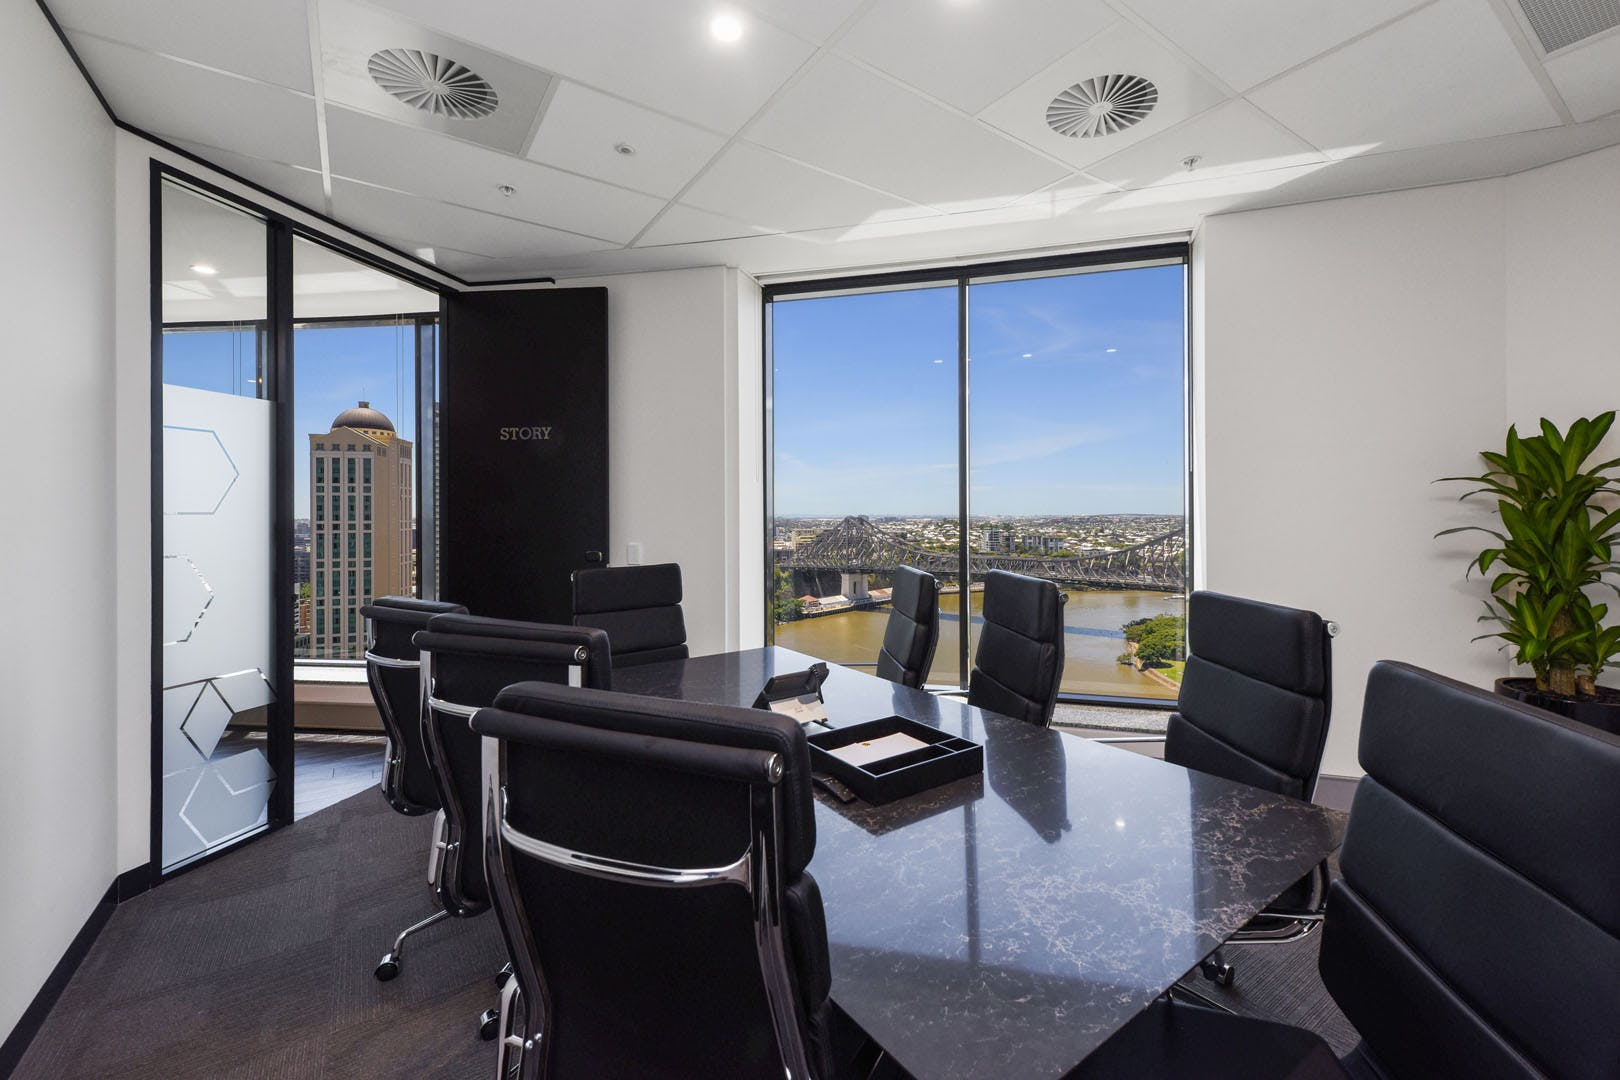 Story, meeting room at Victory Offices | 175 Eagle Meeting Rooms, image 4